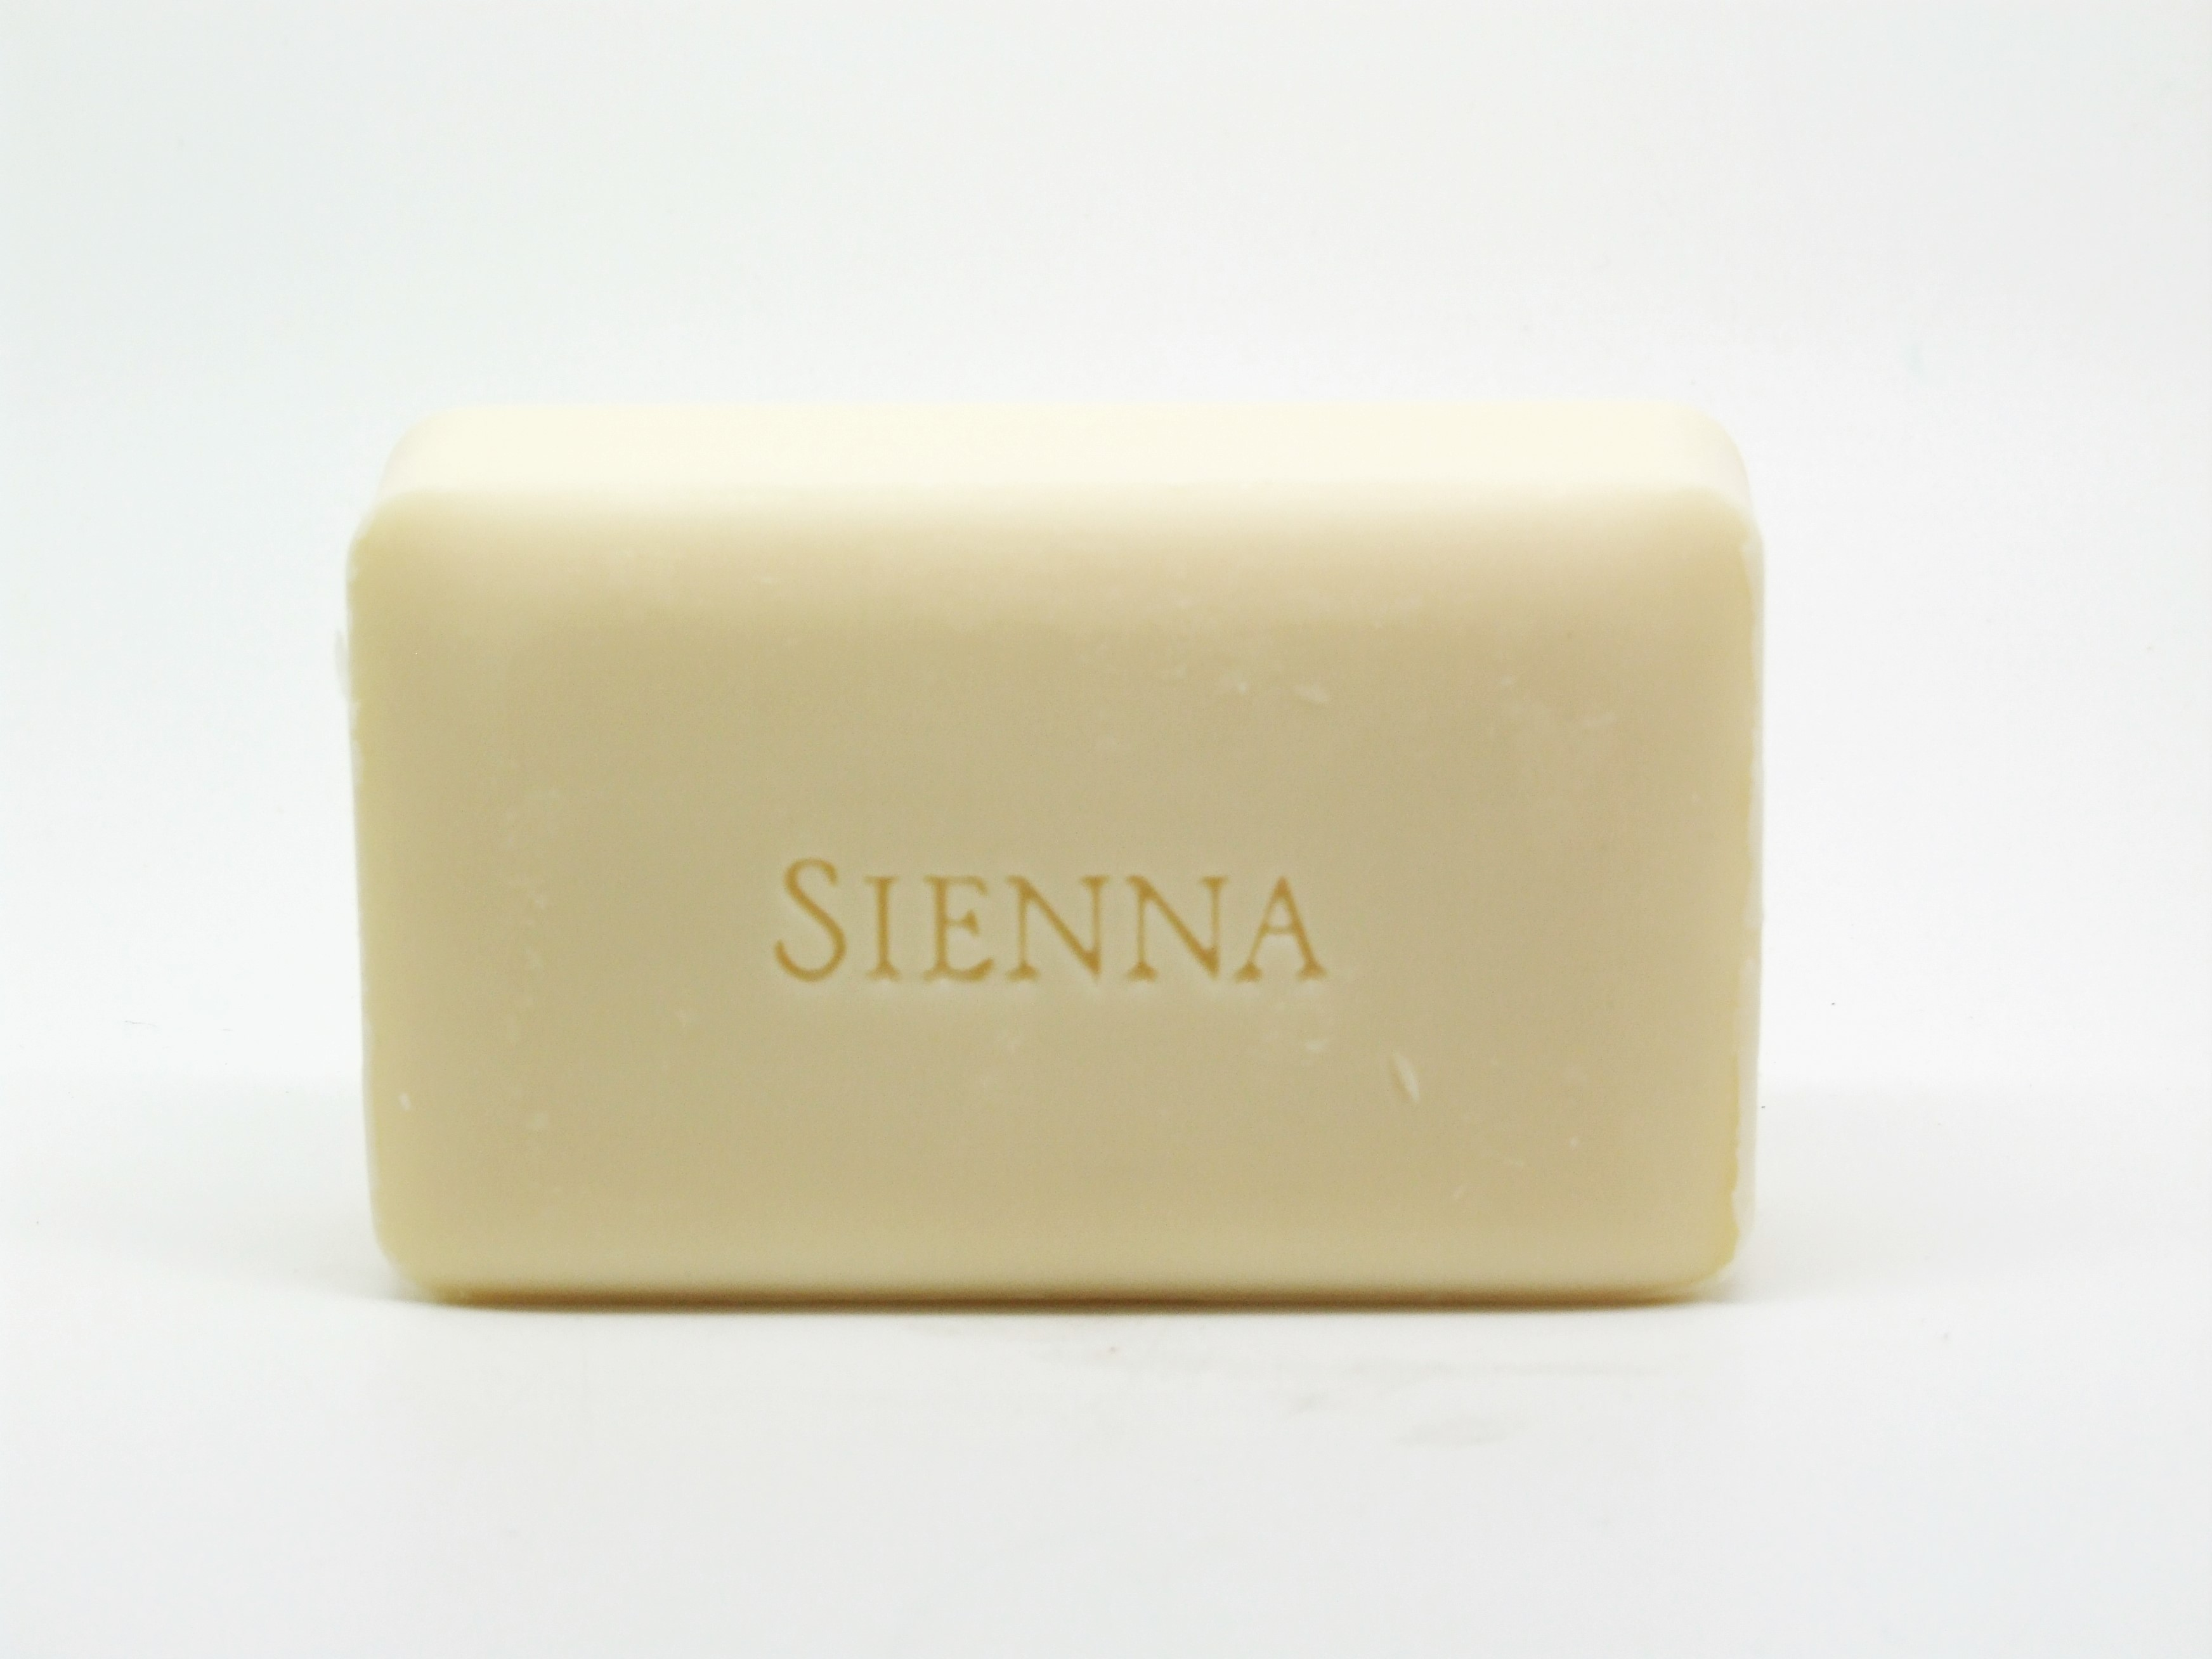 Crabtree & Evelyn: Sienna Soaps